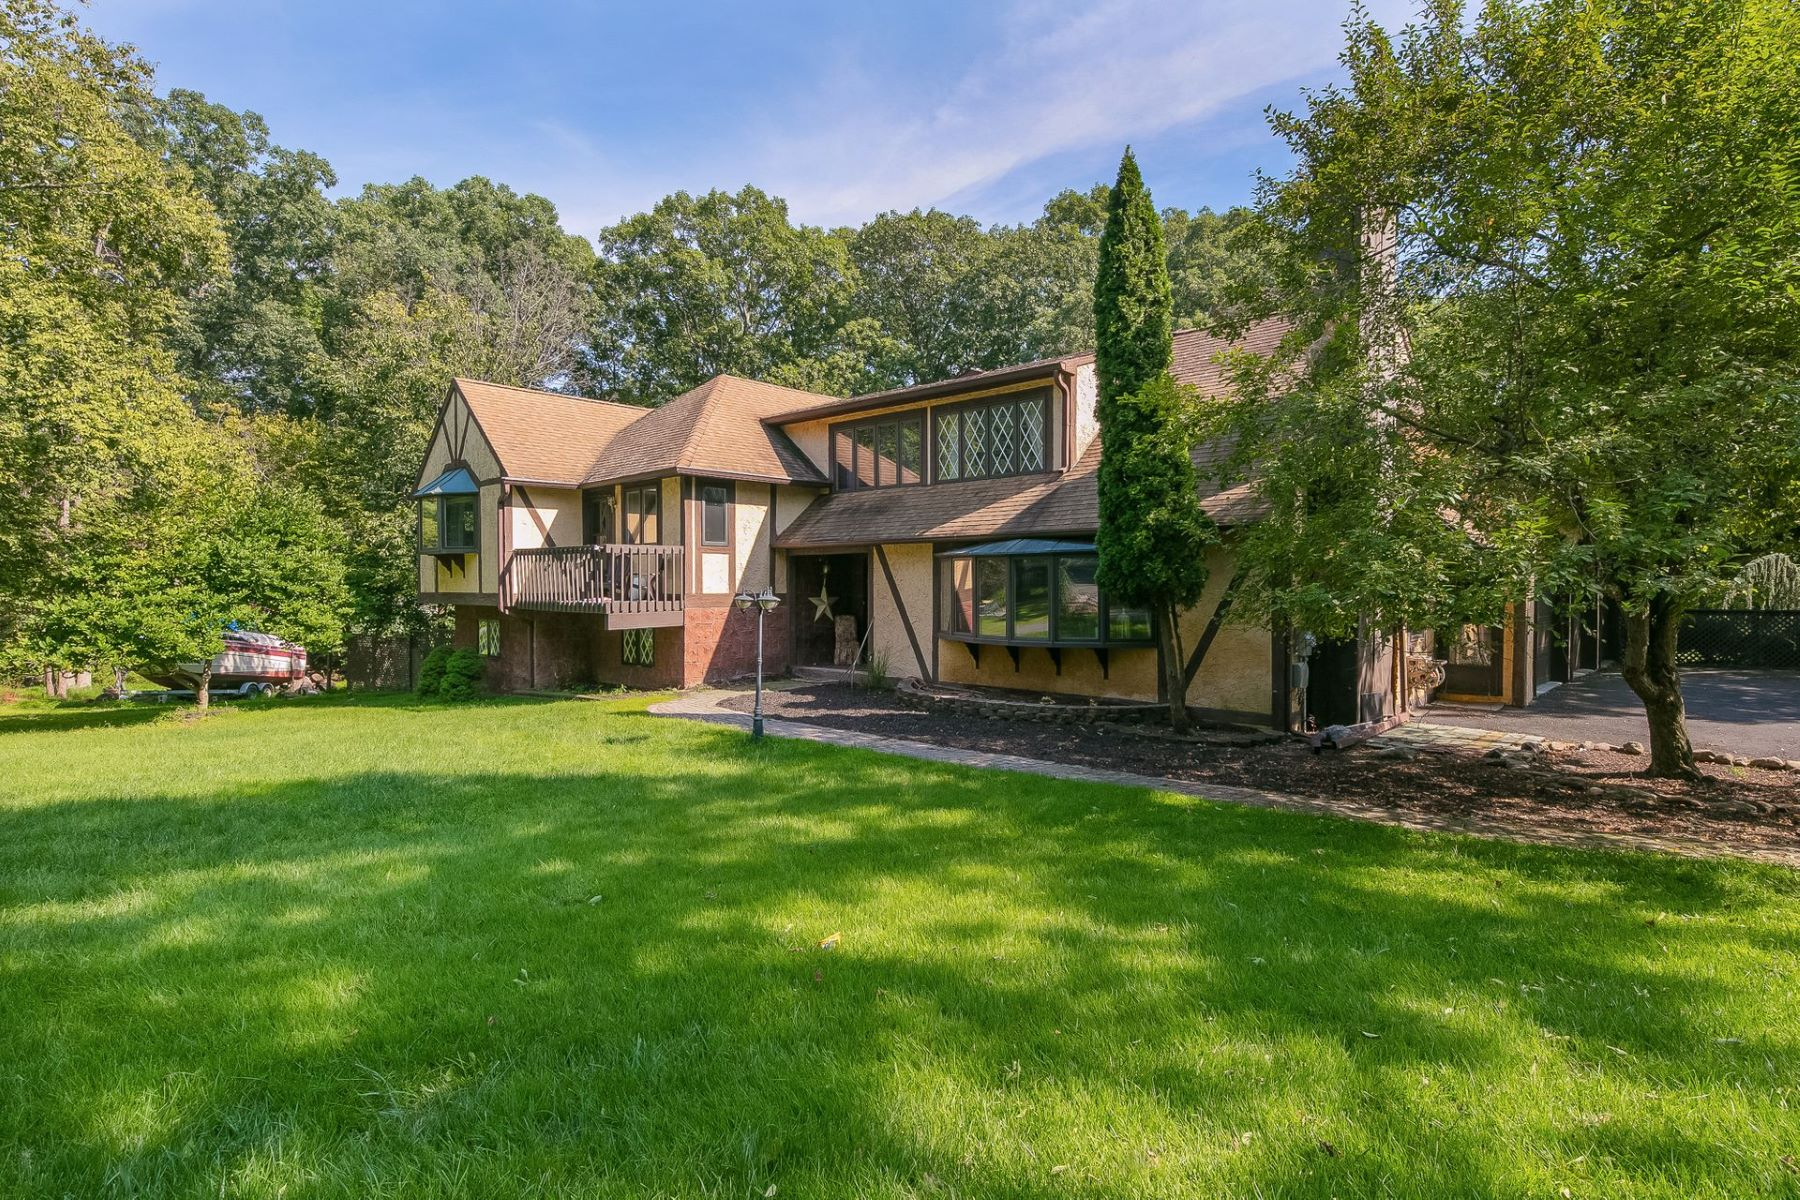 Single Family Homes for Active at Tomkins Cove Colony Colonial 75 Lakeview Drive Stony Point, New York 10986 United States